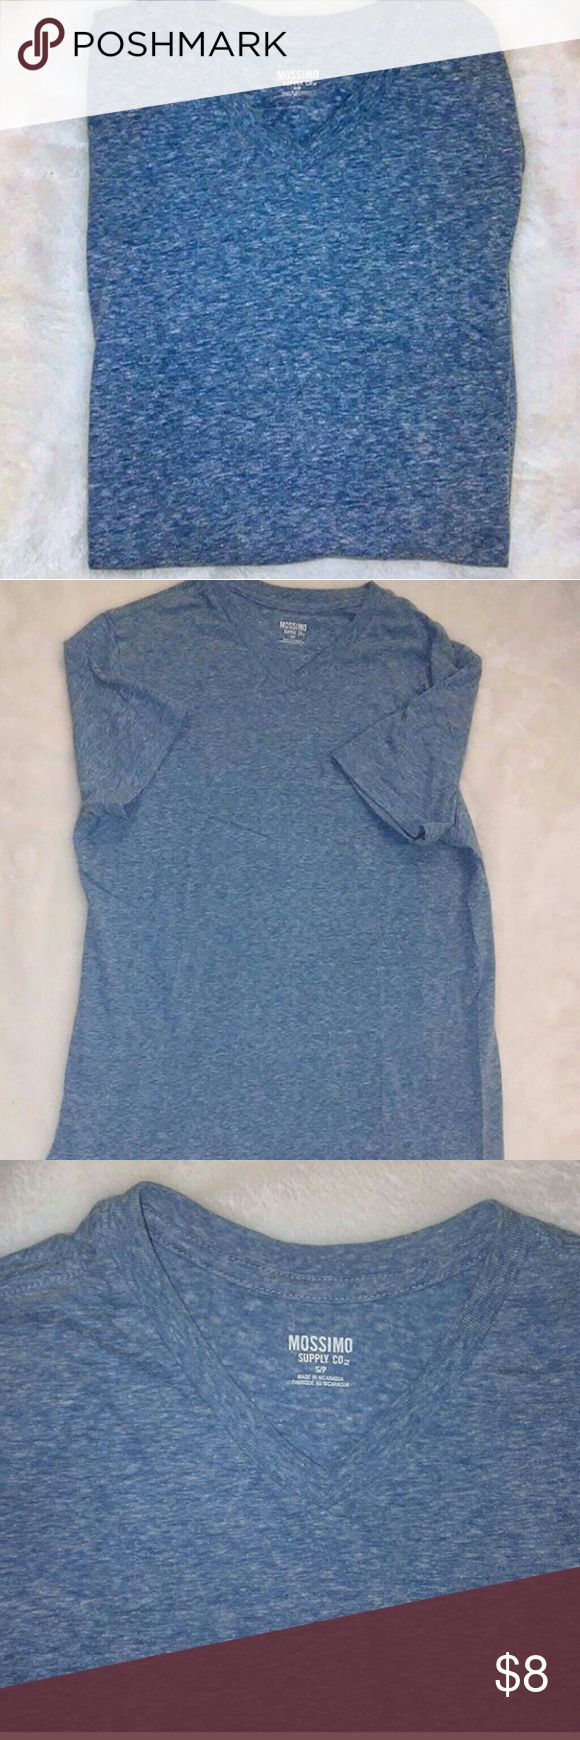 Mossimo V neck T shirt (Small) What can I say? It was nothing but good times. When I tried to impress that girl, with you gripping my upper frame, she clowned you for being too tight on me, said it looked like I stole a little kids t shirt from Toys r us. 4 hours later she ripped you off of me, and it went down, she was singing the blues and decided to put you on  her. Lol. Right. Good times. You and me had a good run, albeit short, but I send you off good shirt to inspire someone else.  Pre…